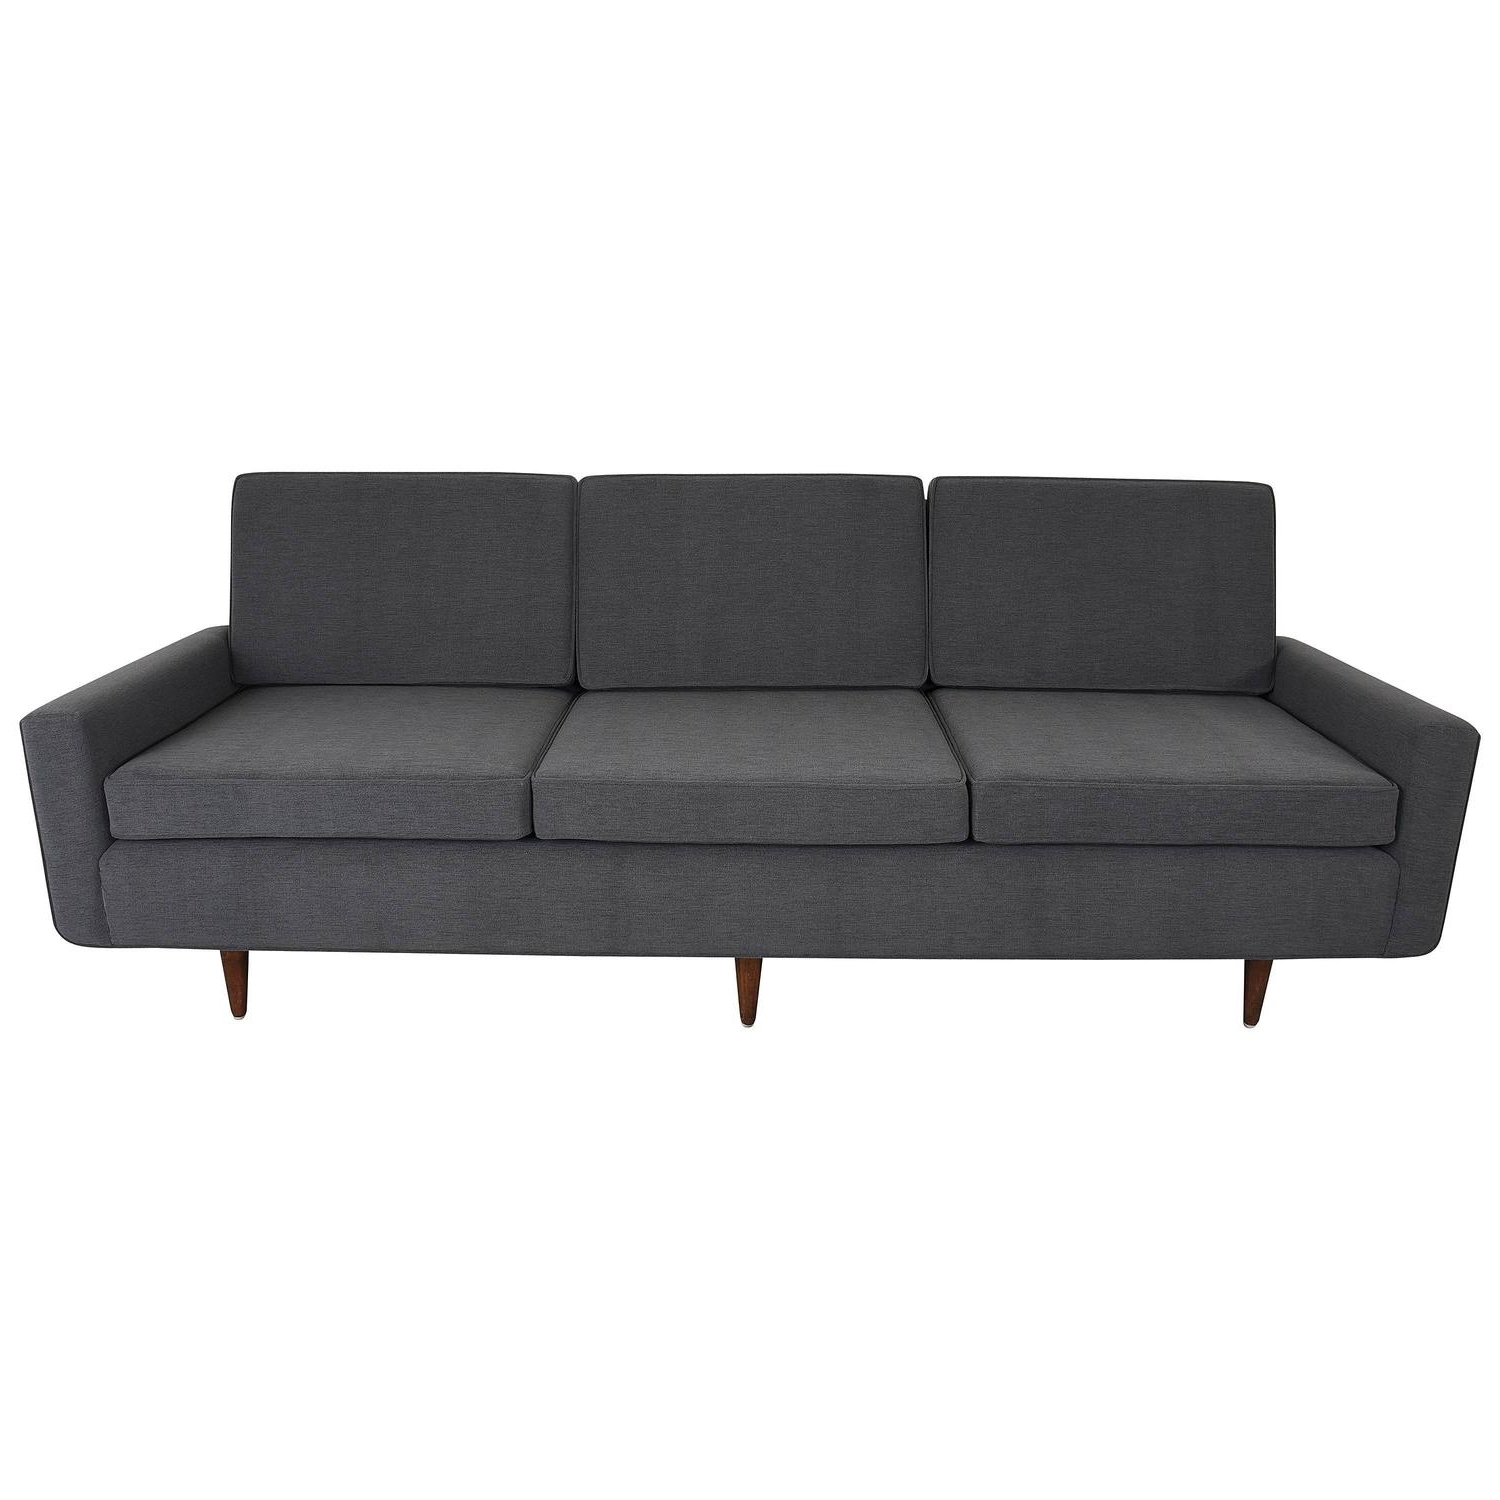 2019 Florence Knoll Sofas – 59 For Sale At 1Stdibs In Florence Large Sofas (View 1 of 20)